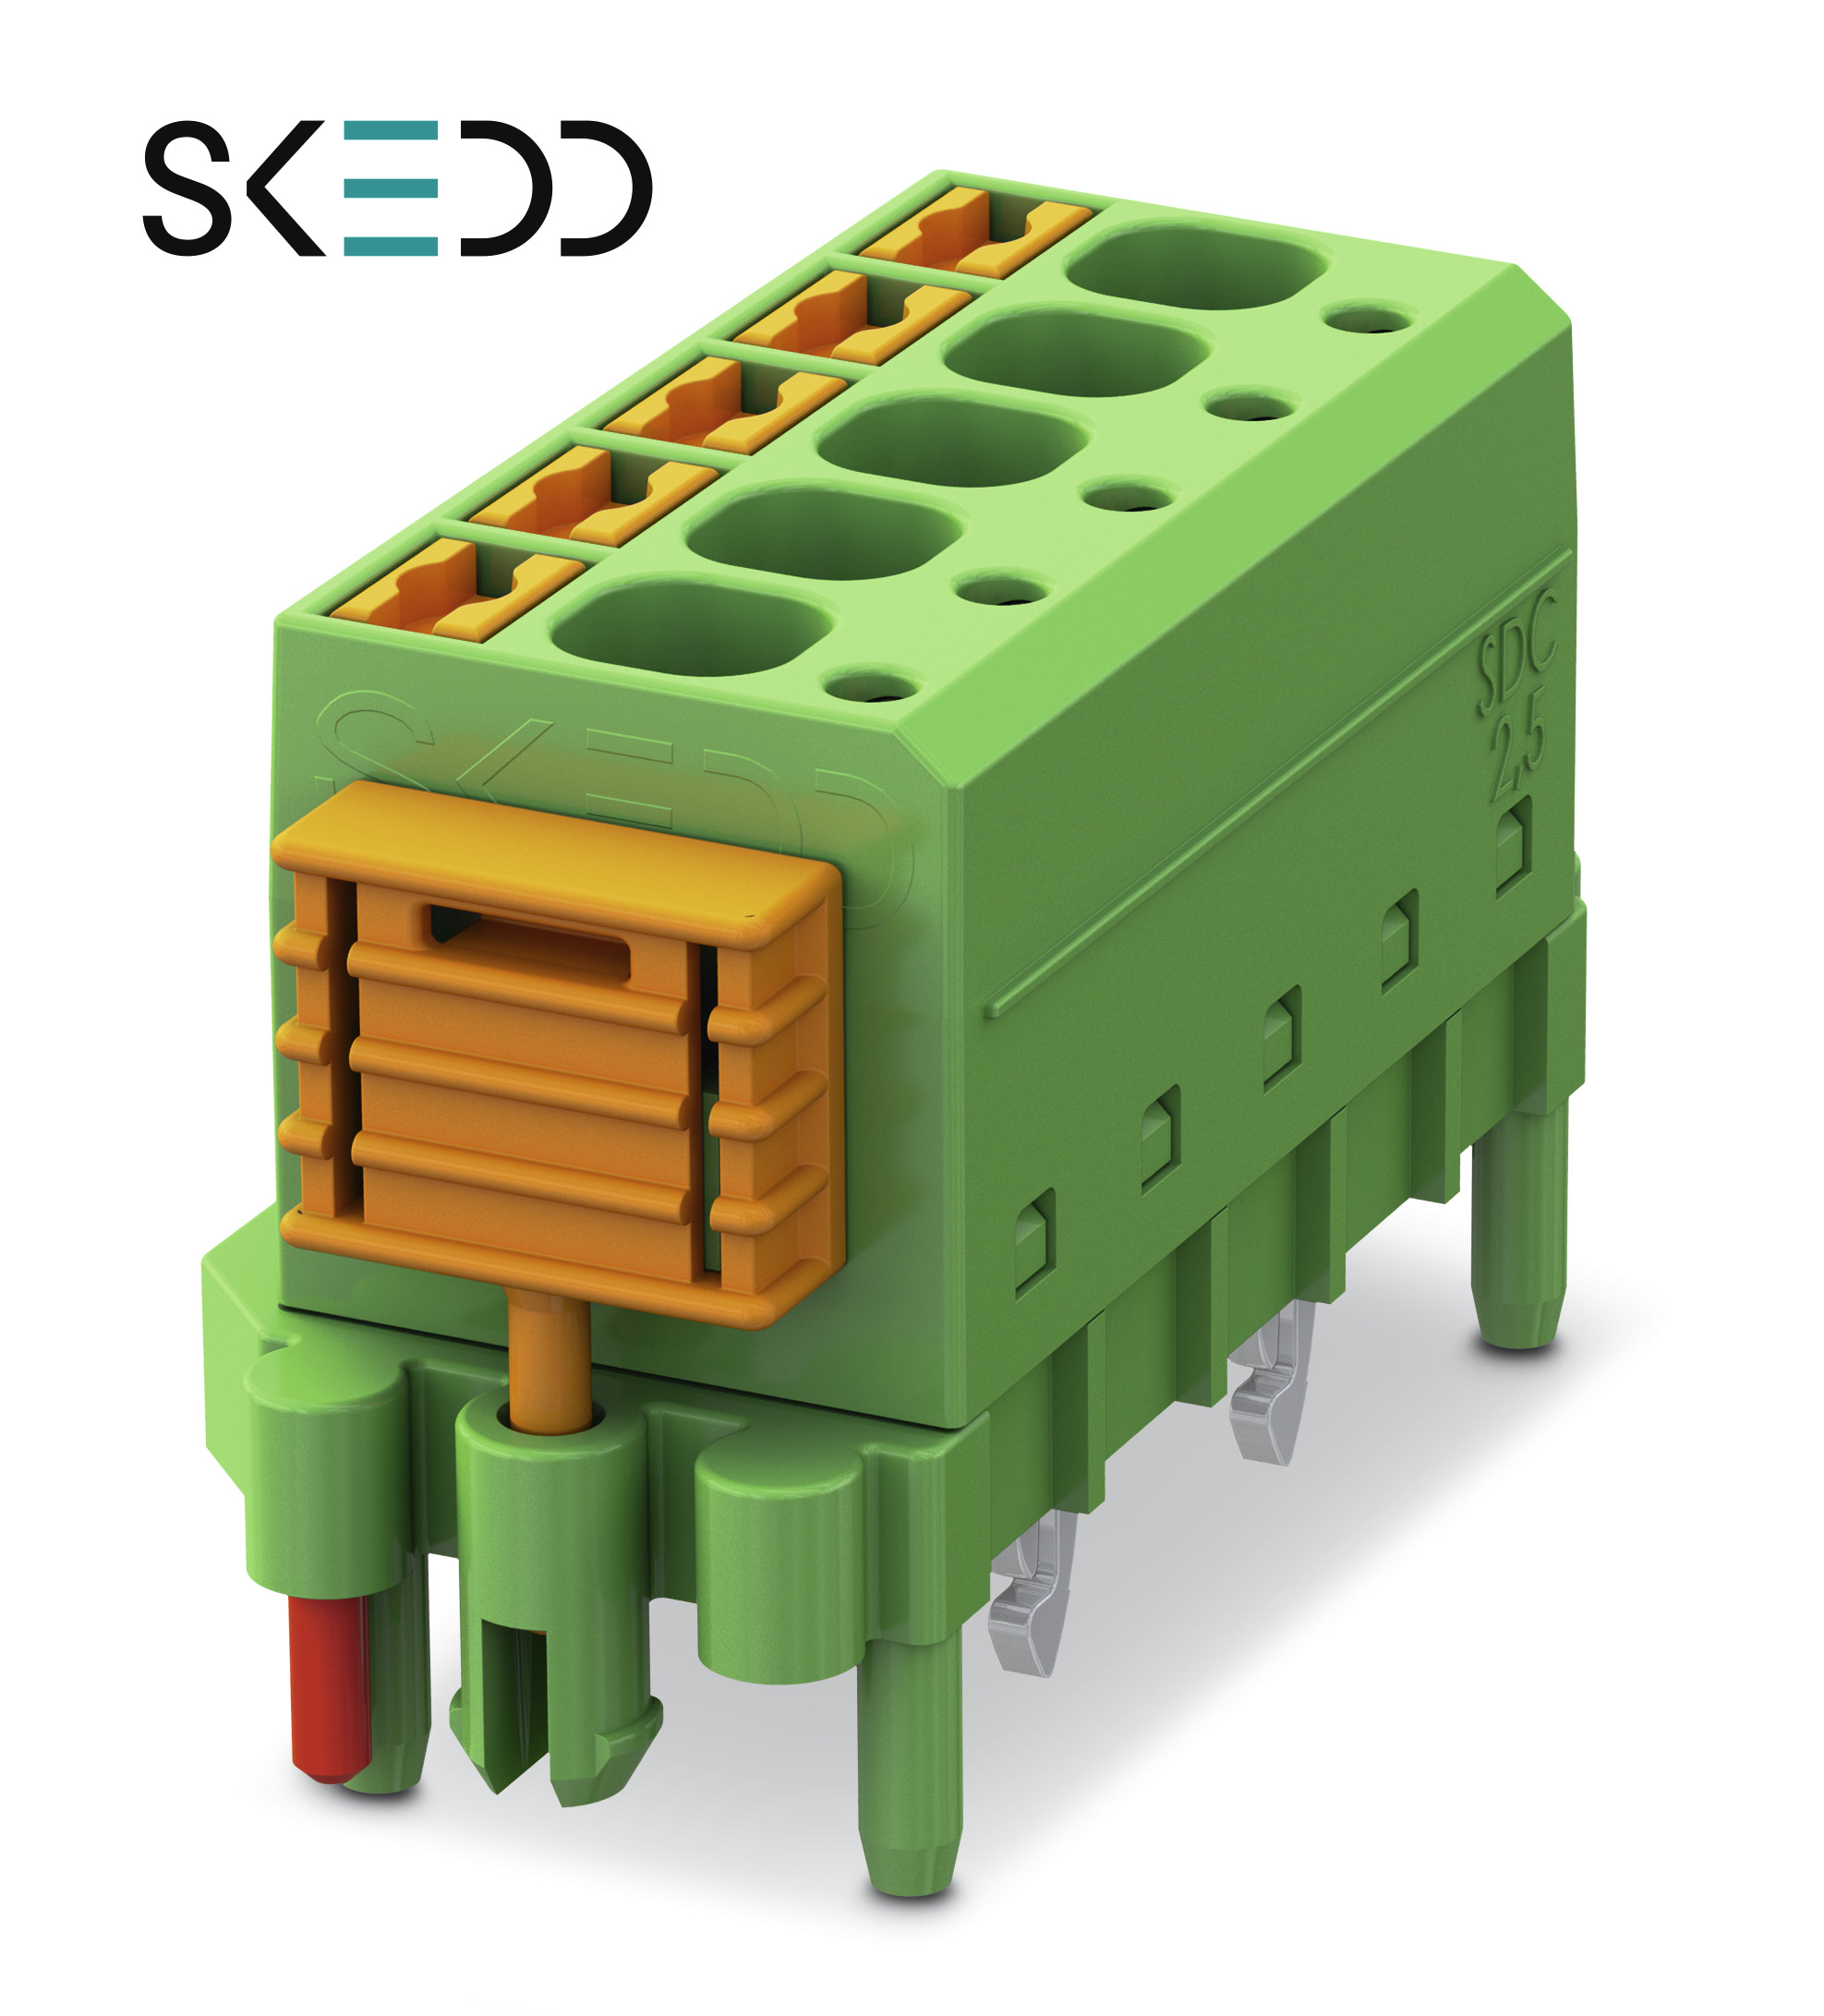 Direct Wire To Board Connectors Allow Easy Hand Assembly Engineer Live Vehicle Wiring Database In Pcb Connection Technology With The Introduction Of Skedd Sdc 25 Series Solderless From Phoenix Contact